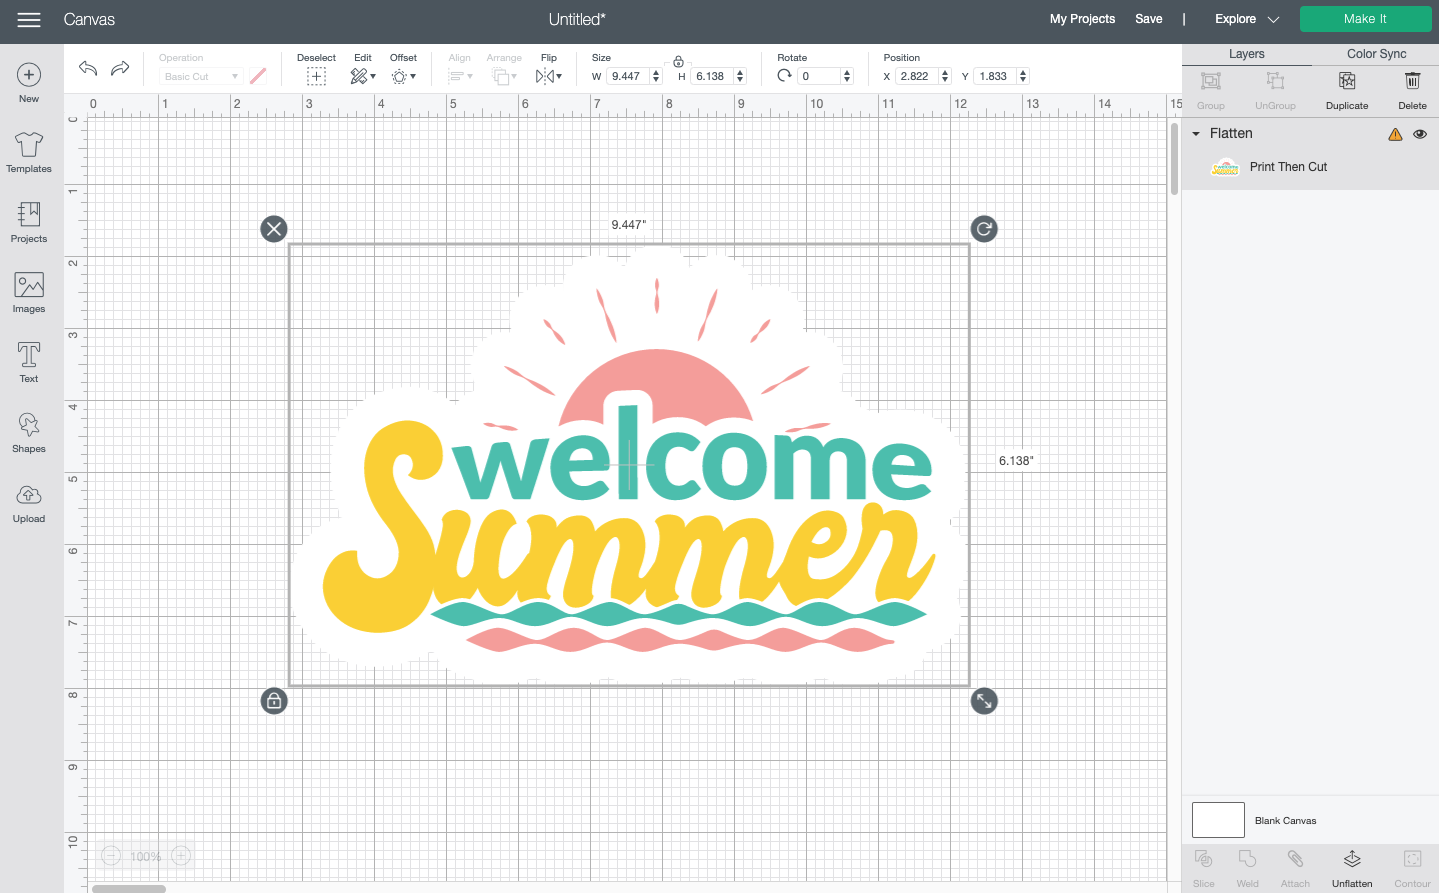 Cricut Design Space: Welcomes summer flattened image to make it a sticker